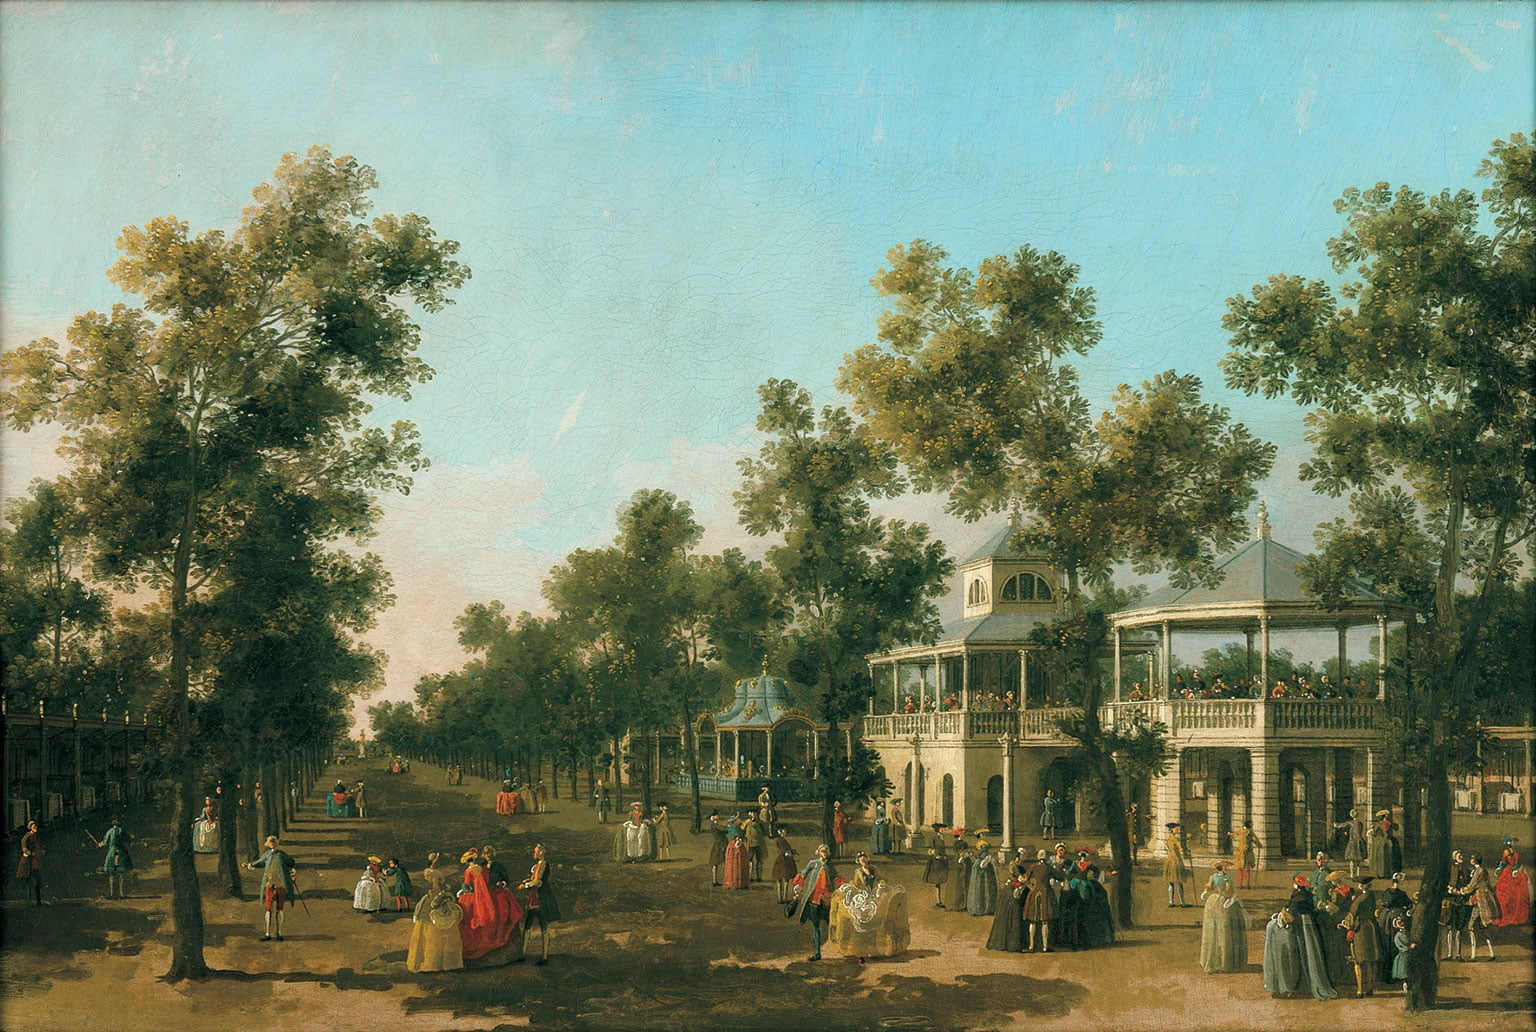 1. Canaletto: Celebrating Britain, Compton Verney, 50% off with National Art Pass - Canaletto, The Grand Walk Vauxhall Gardens, c.1751. © CV, photo by Prudence Cuming Associates Ltd